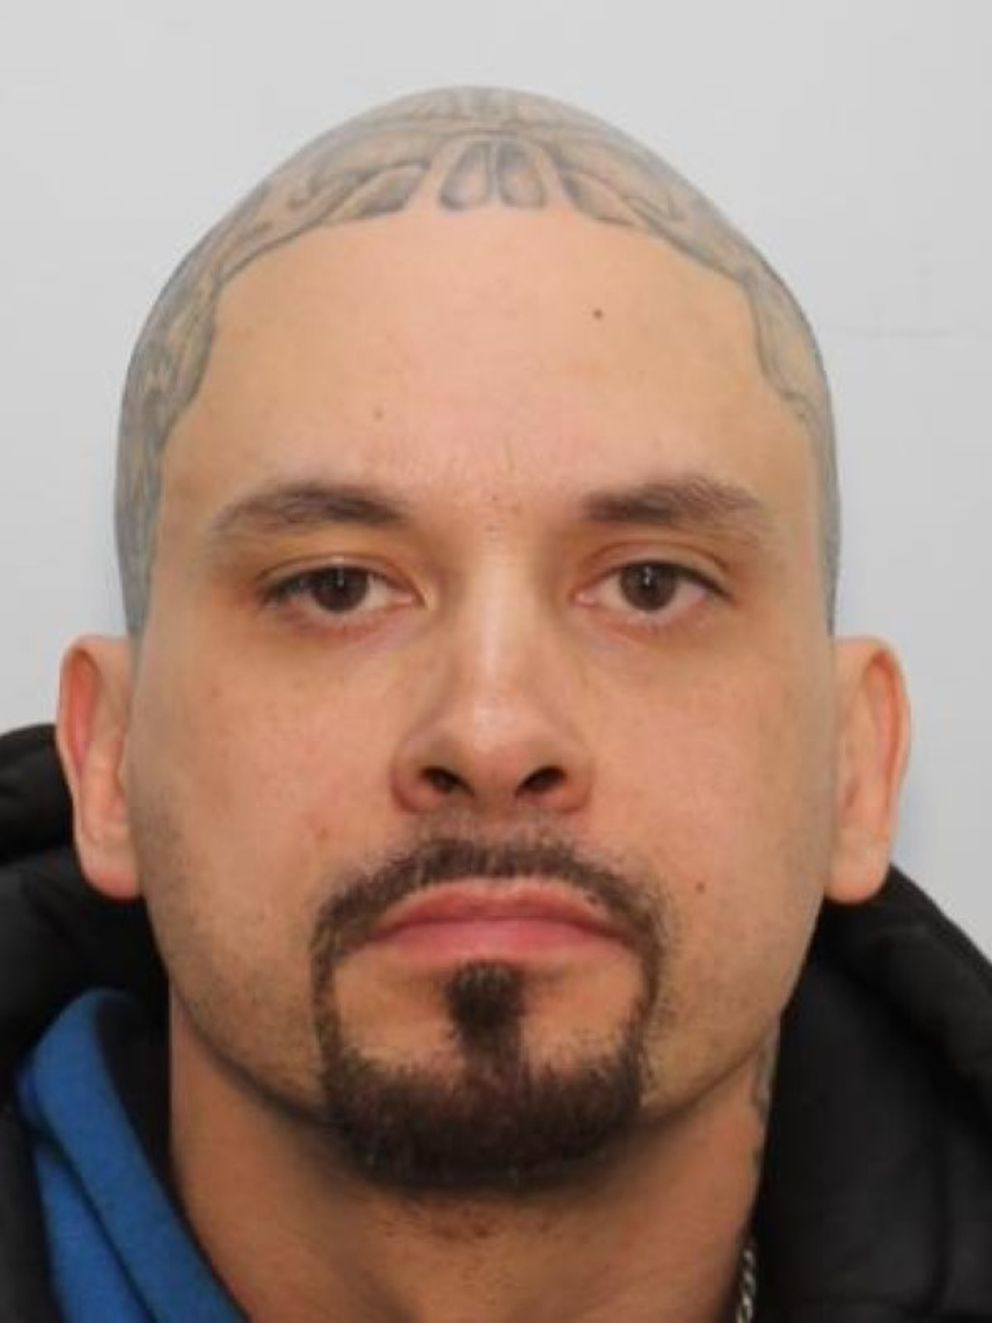 Jack L. Espinoza Jr., 38, is being sought by Anchorage police on burglary and assault charges in connection with an incident Feb. 10, 2020. (APD photo)